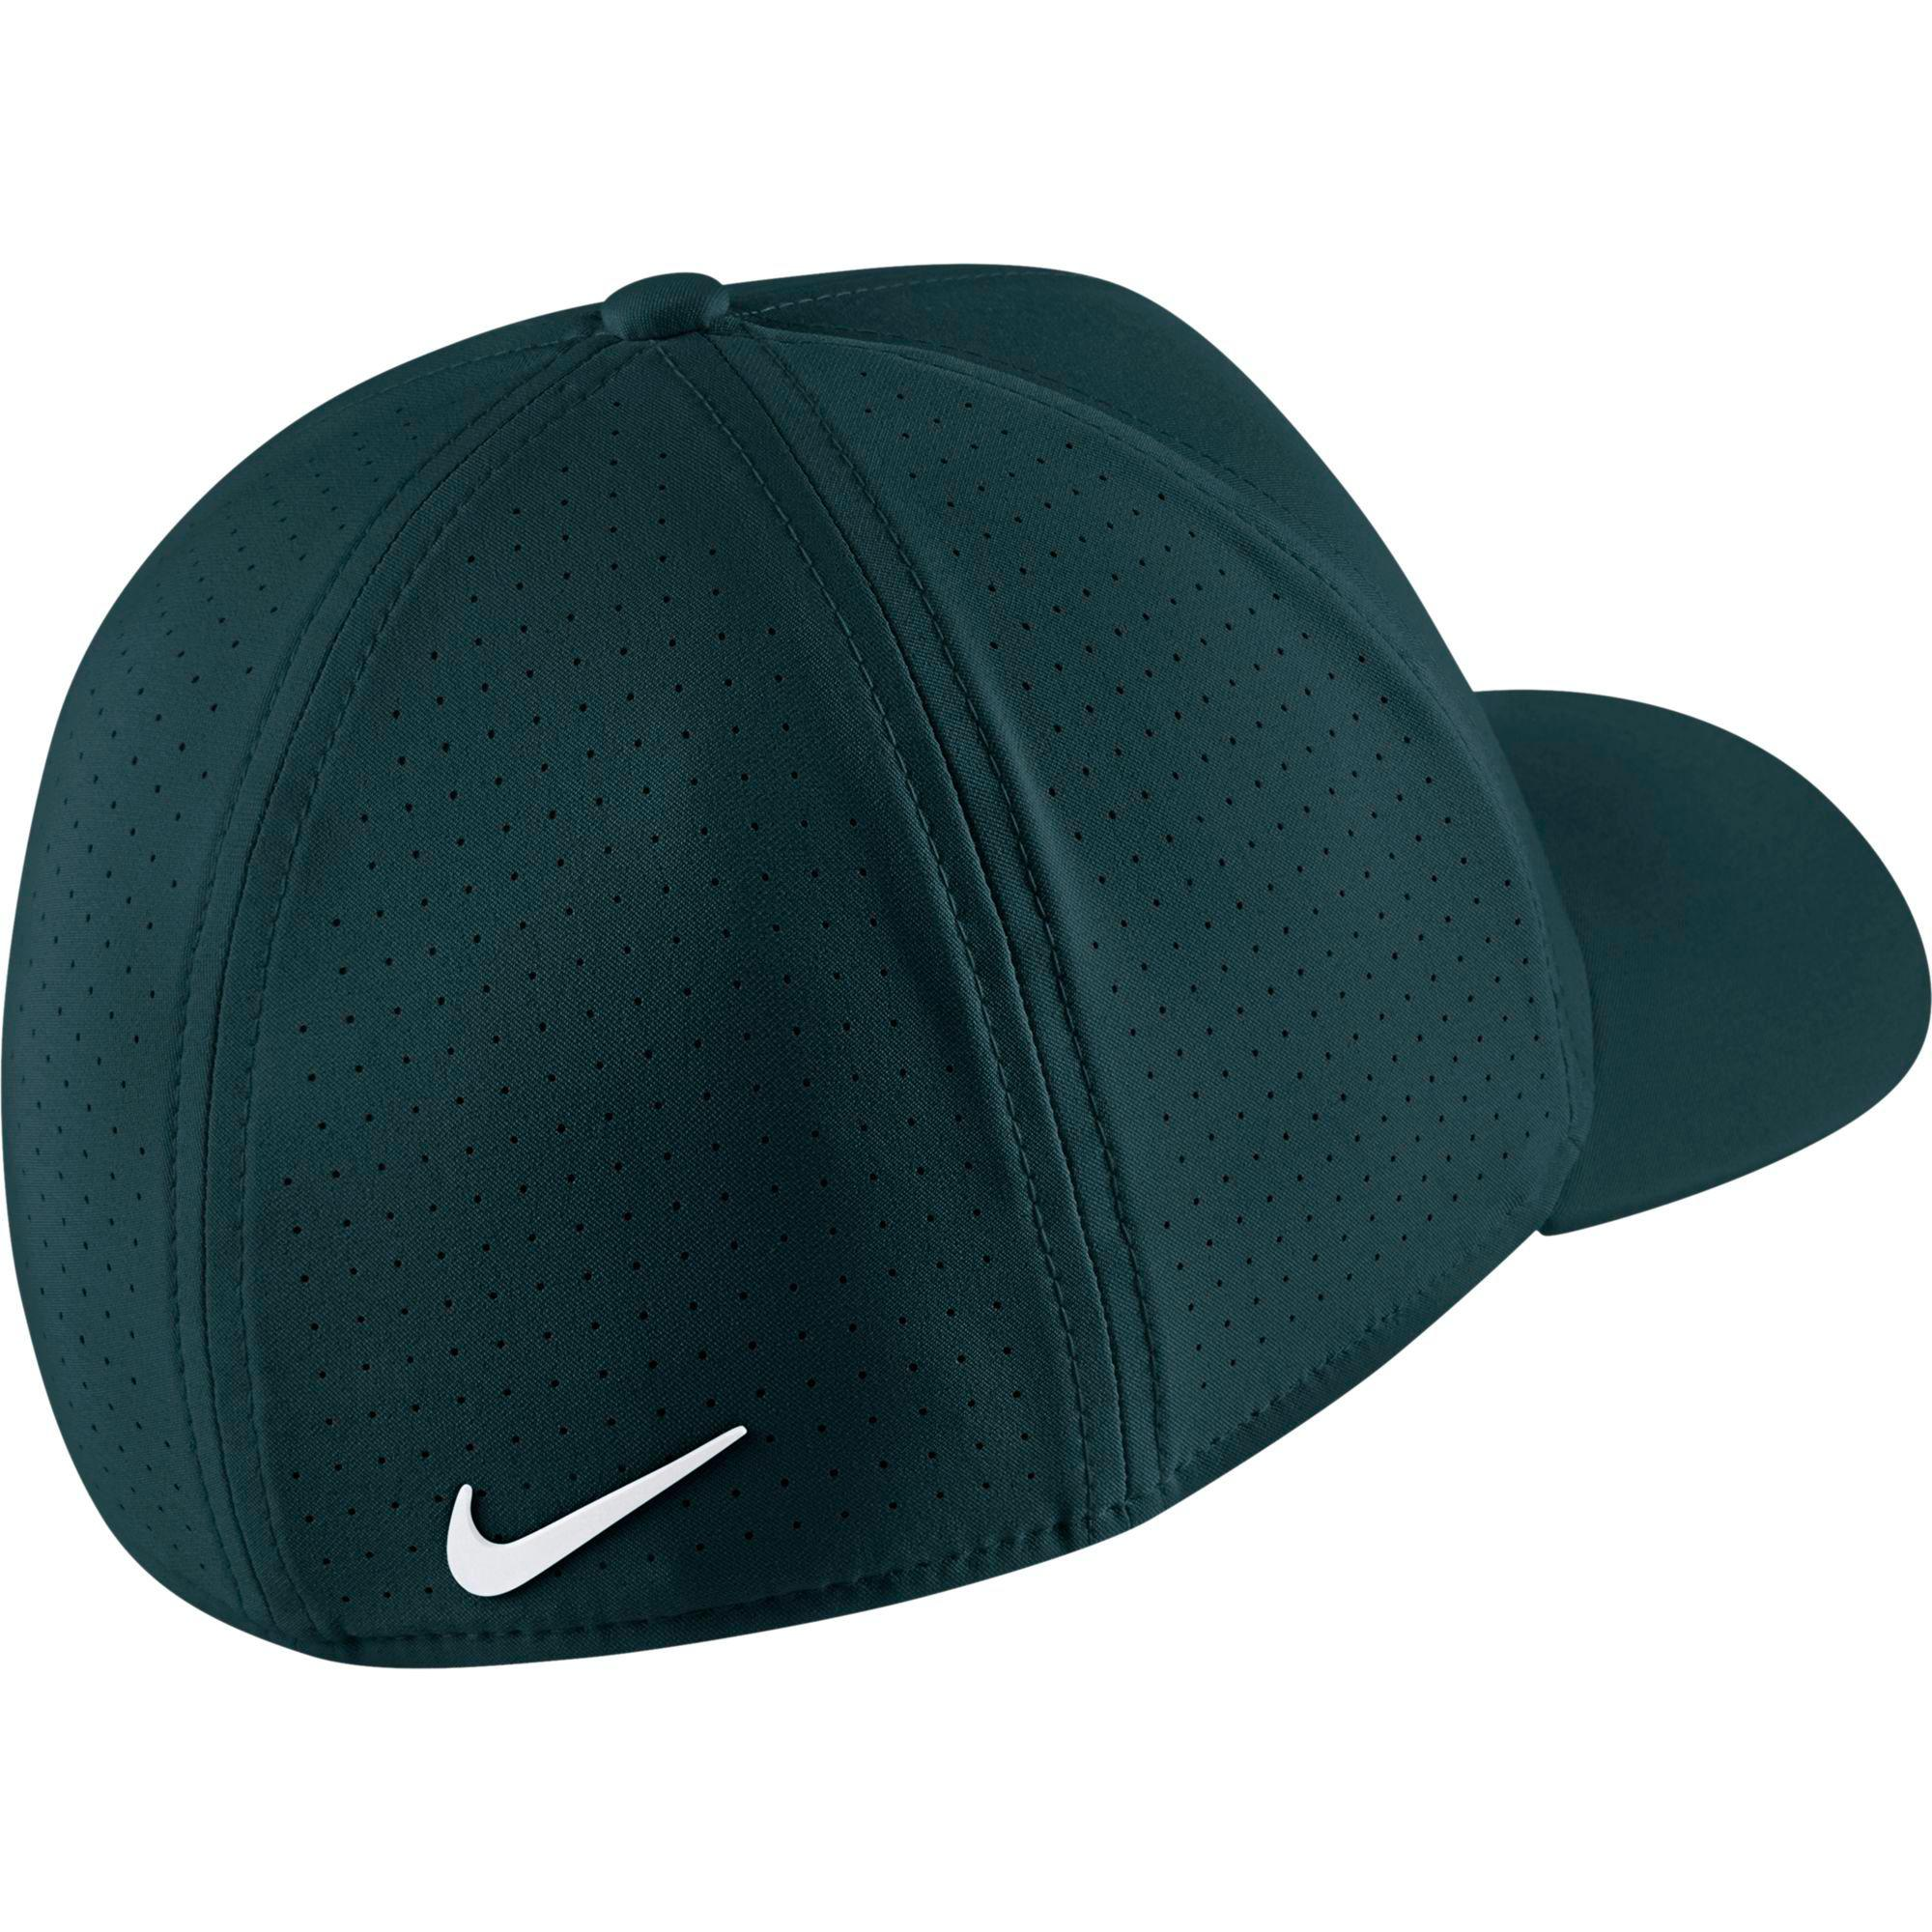 086df4a6 Nike - Green Aerobill Tw Classic99 Golf Hat for Men - Lyst. View fullscreen